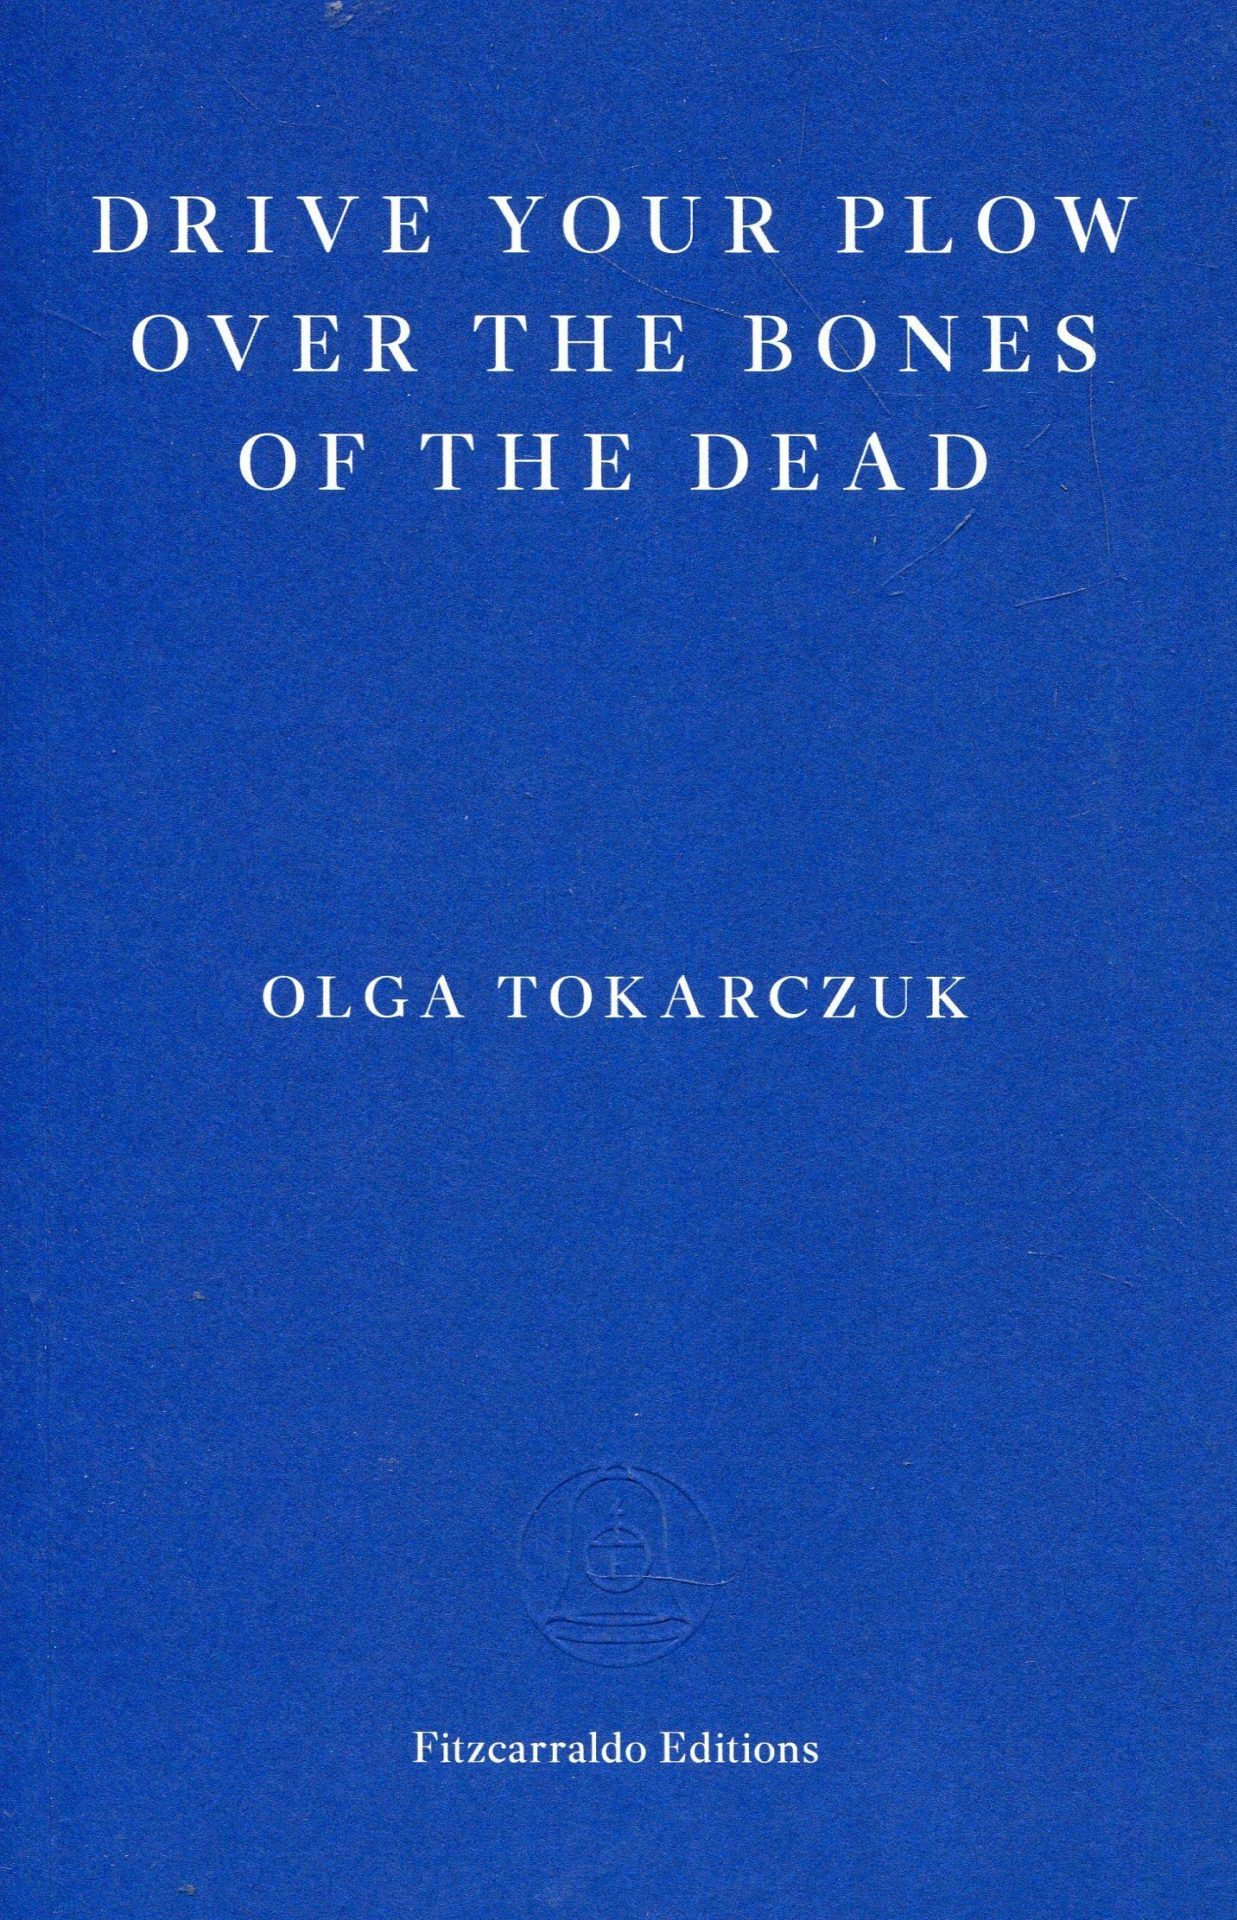 Drive Your Plow Over the Bones of the Dead by Olga Tokarczuk (tr. Antonia Lloyd-Jones) | 9781913097257